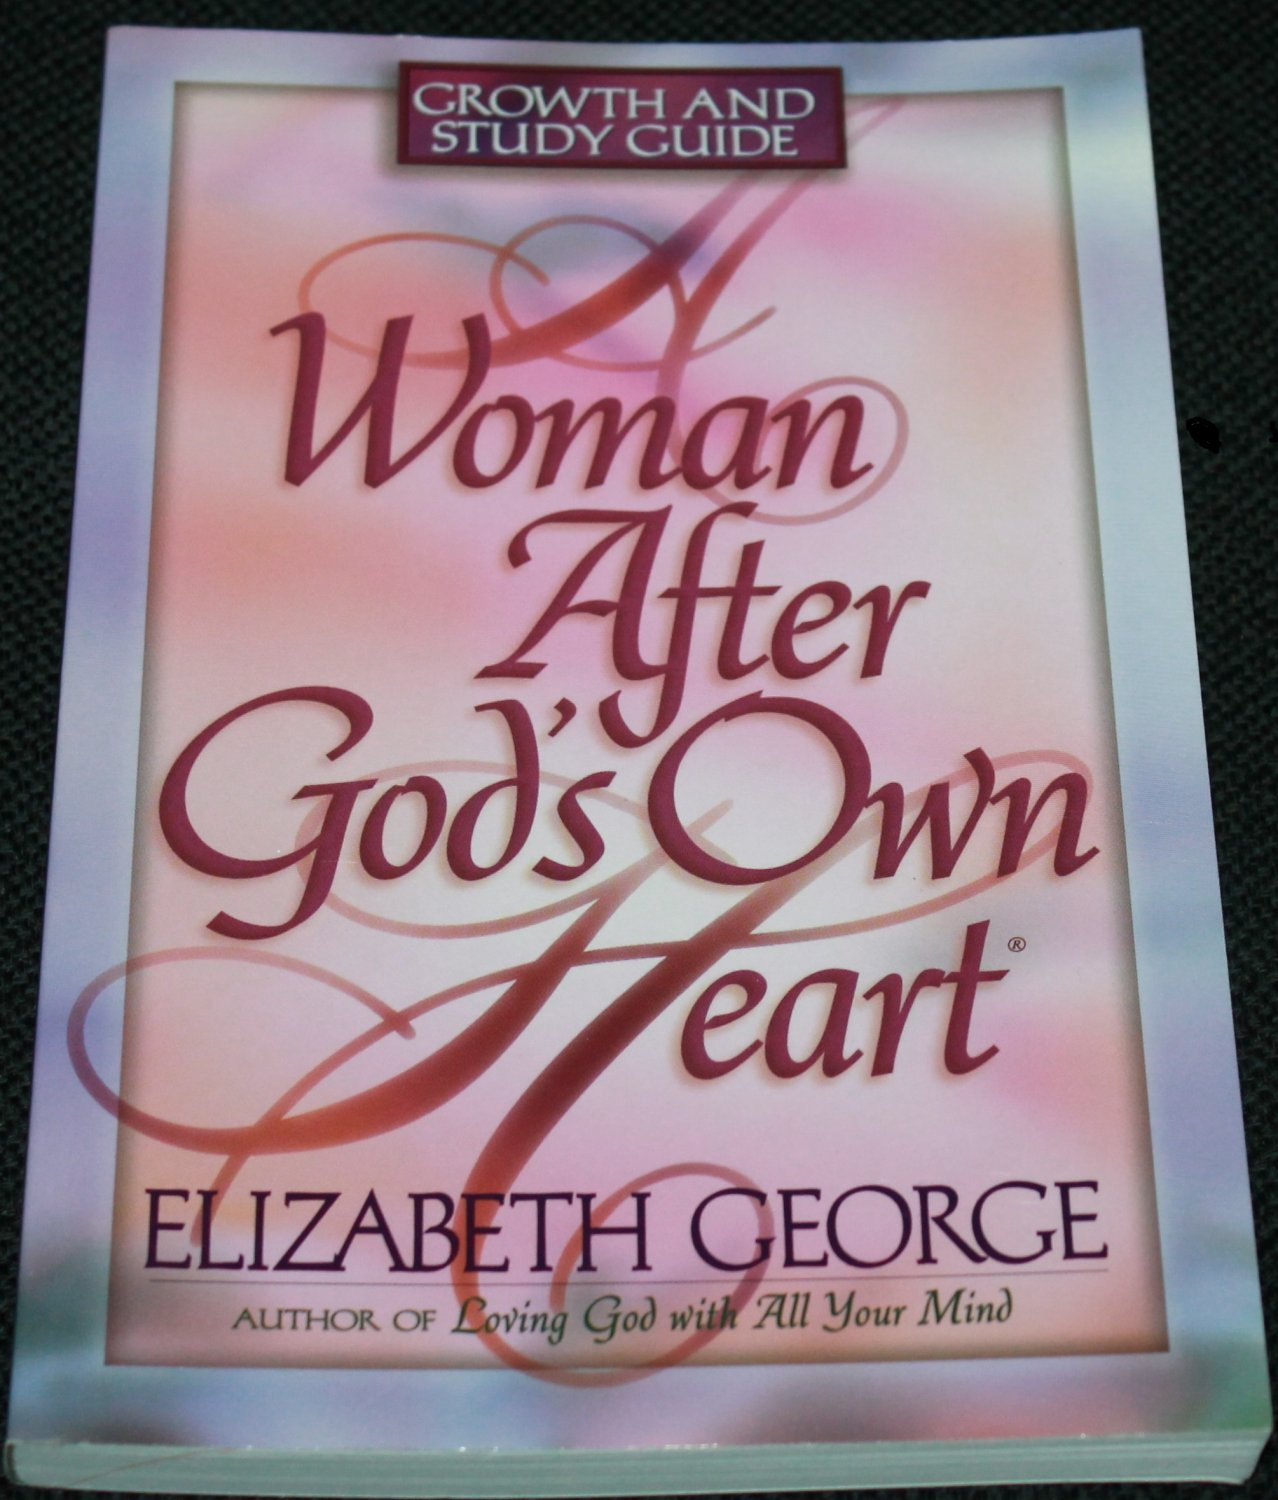 Woman After God's Own Heart by Elizabeth George paperback Christian book